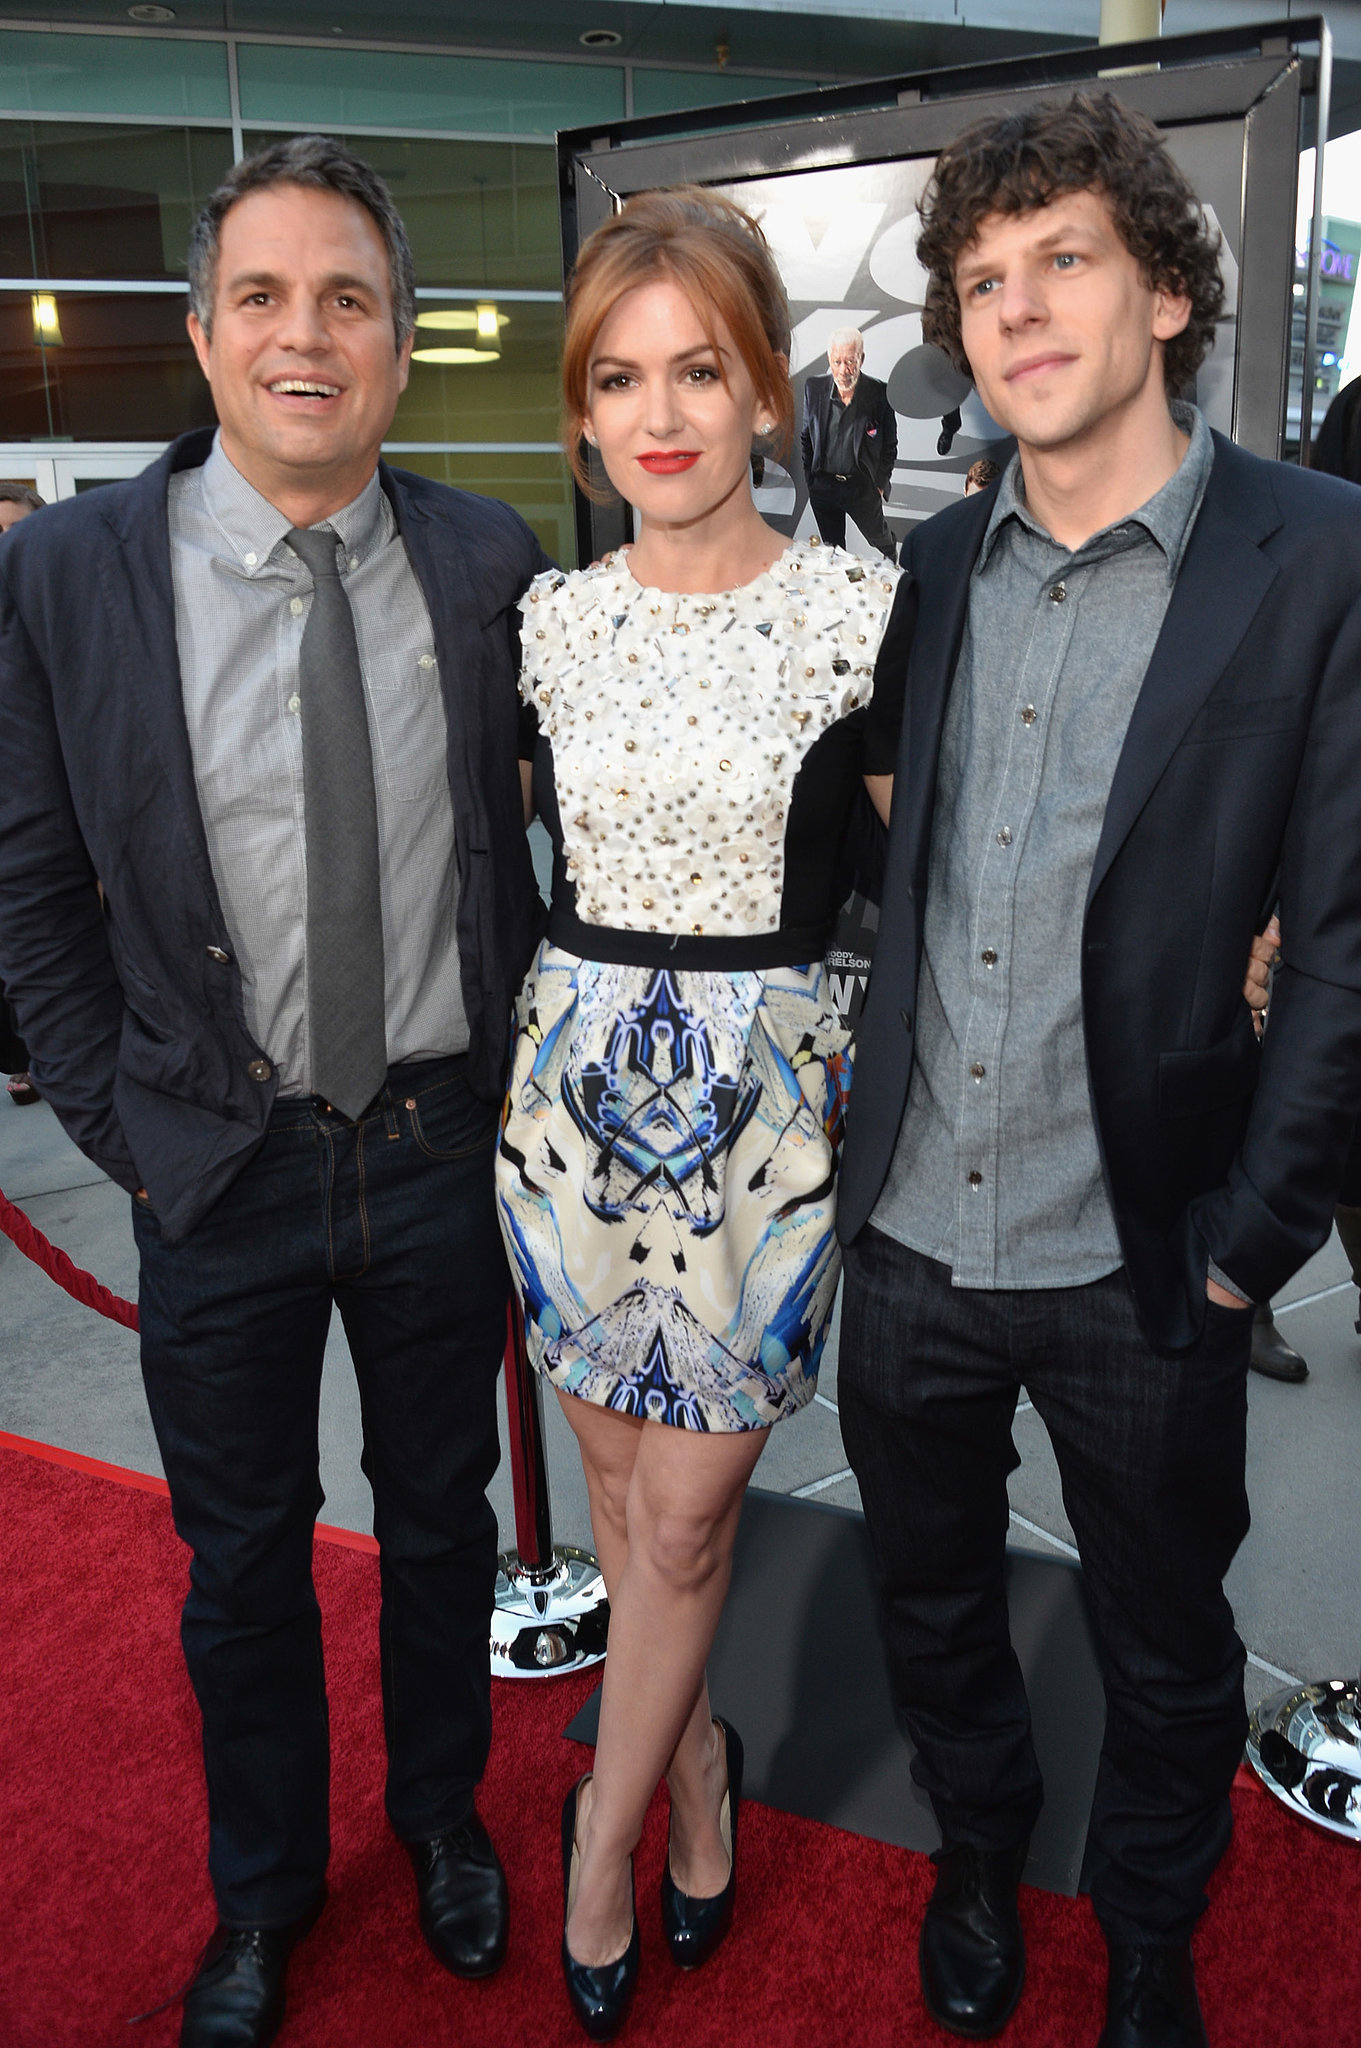 Mark Ruffalo, Isla Fisher, and Jesse Eisenberg attended the LA premiere of their new film.